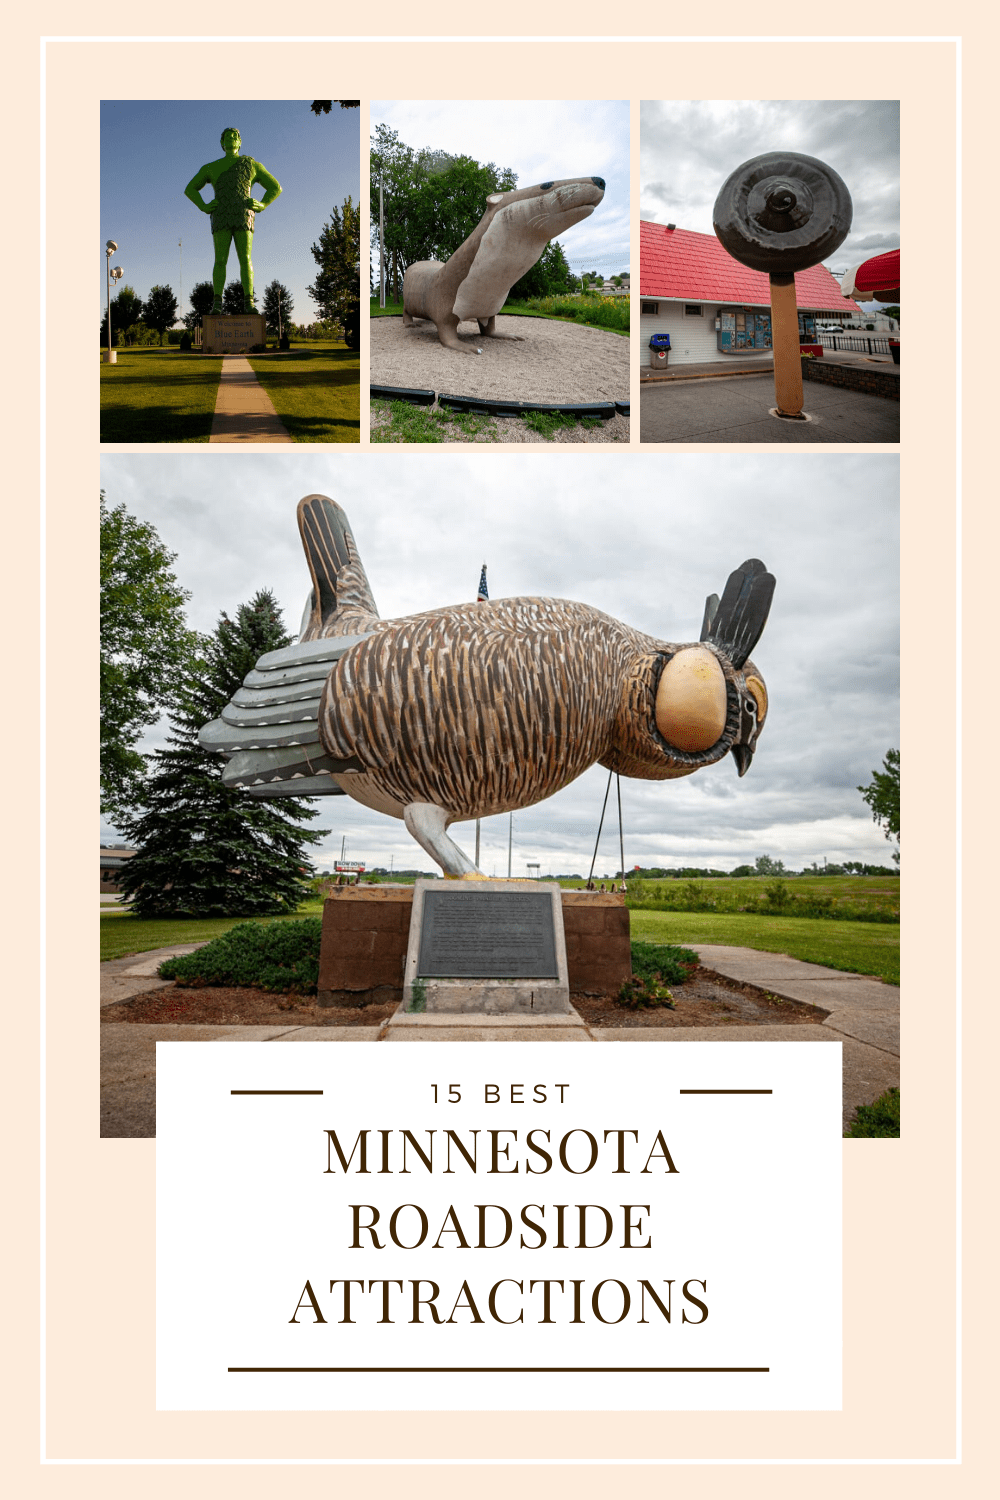 The best Minnesota roadside attractions to visit on a Minnesota road trip or weekend getaway. Add these roadside oddities and road trip stops to your bucket list and visit these roadside attractions in Minnesota on your next travel adventure. #MinnesotaRoadsideAttractions #MinnesotaRoadsideAttraction #RoadsideAttractions #RoadsideAttraction #RoadTrip #MinnesotaRoadTrip #MinnesotaRoadTripBucketLists #MinnesotaBucketList #MinnesotaRoadTripMap #MinnesotaRoadTripIdeas #WeirdRoadsideAttractions